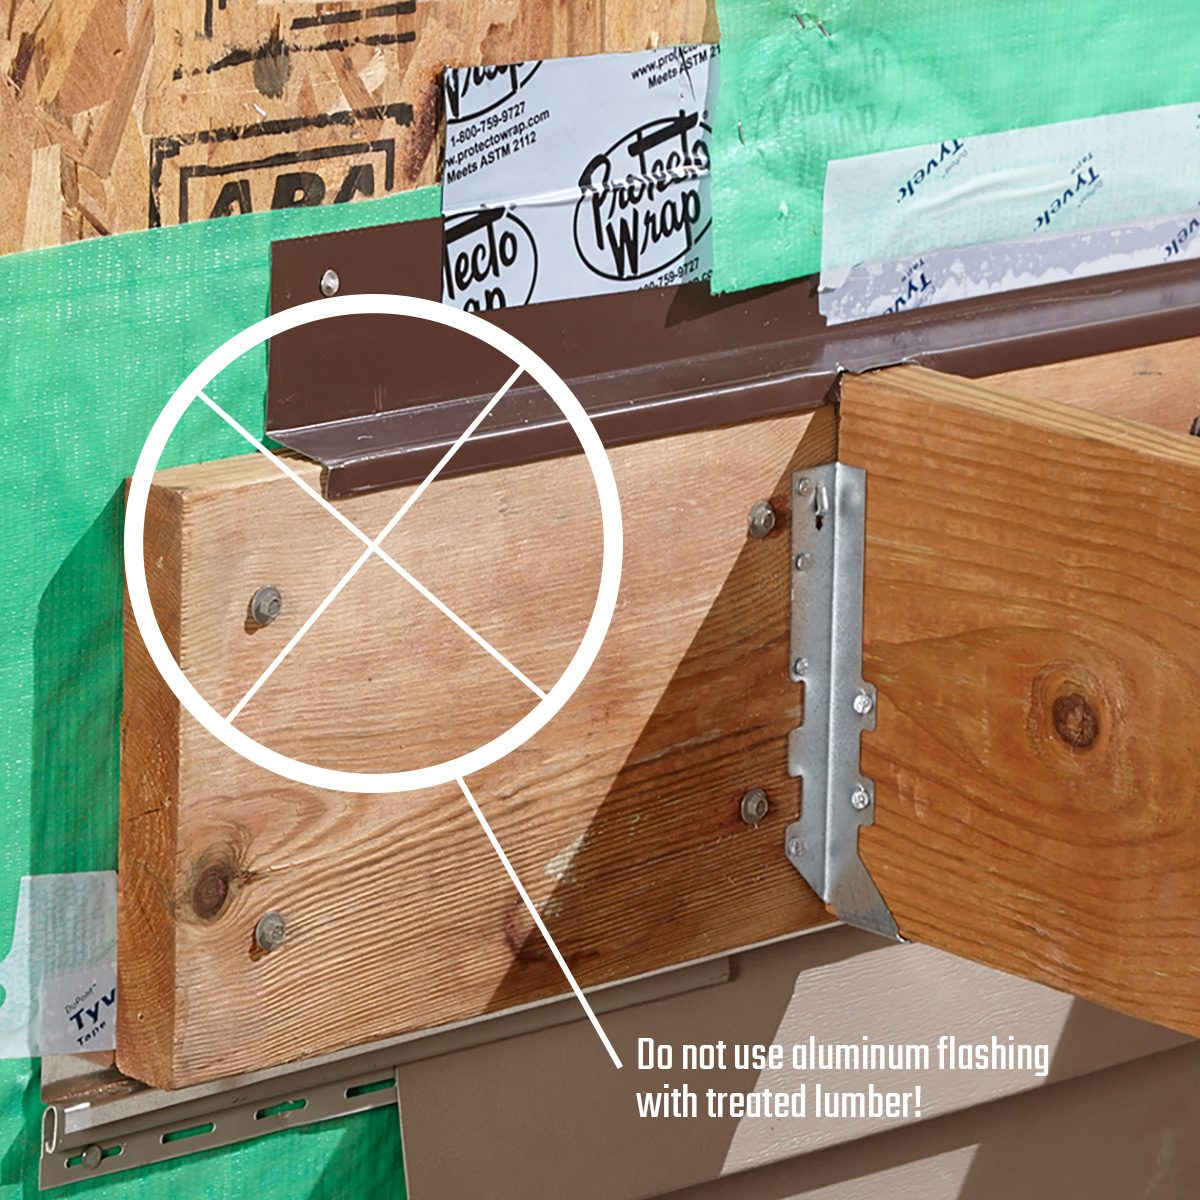 A Thorough Guide to All Things Treated Lumber